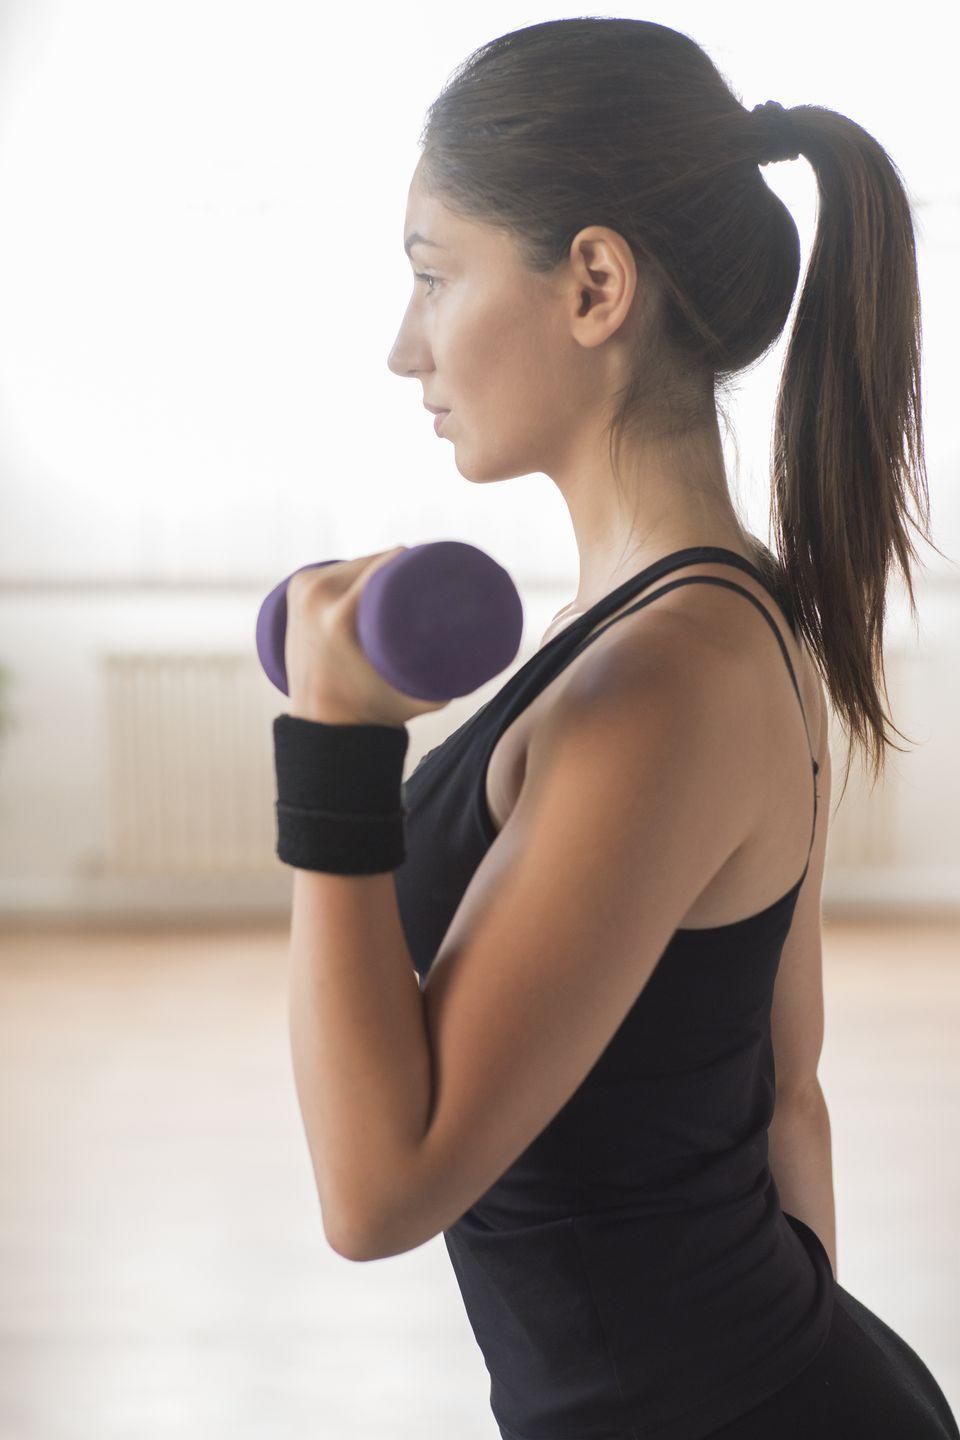 <p>Change up the standard shoulder press with this move that adds rotation and hits all angles of the deltoids. </p><p><strong>How to: </strong>Stand tall with feet hip-width apart and hold a dumbbell in each hand. Start with your arm bent and palm facing towards your shoulder, like you would at the top of a bicep curl. Press your arms up overhead but twist them on the way up so that your palms are facing away from you. Make sure to reach full extension where your biceps are touching your ears, then lower back down and repeat.</p>